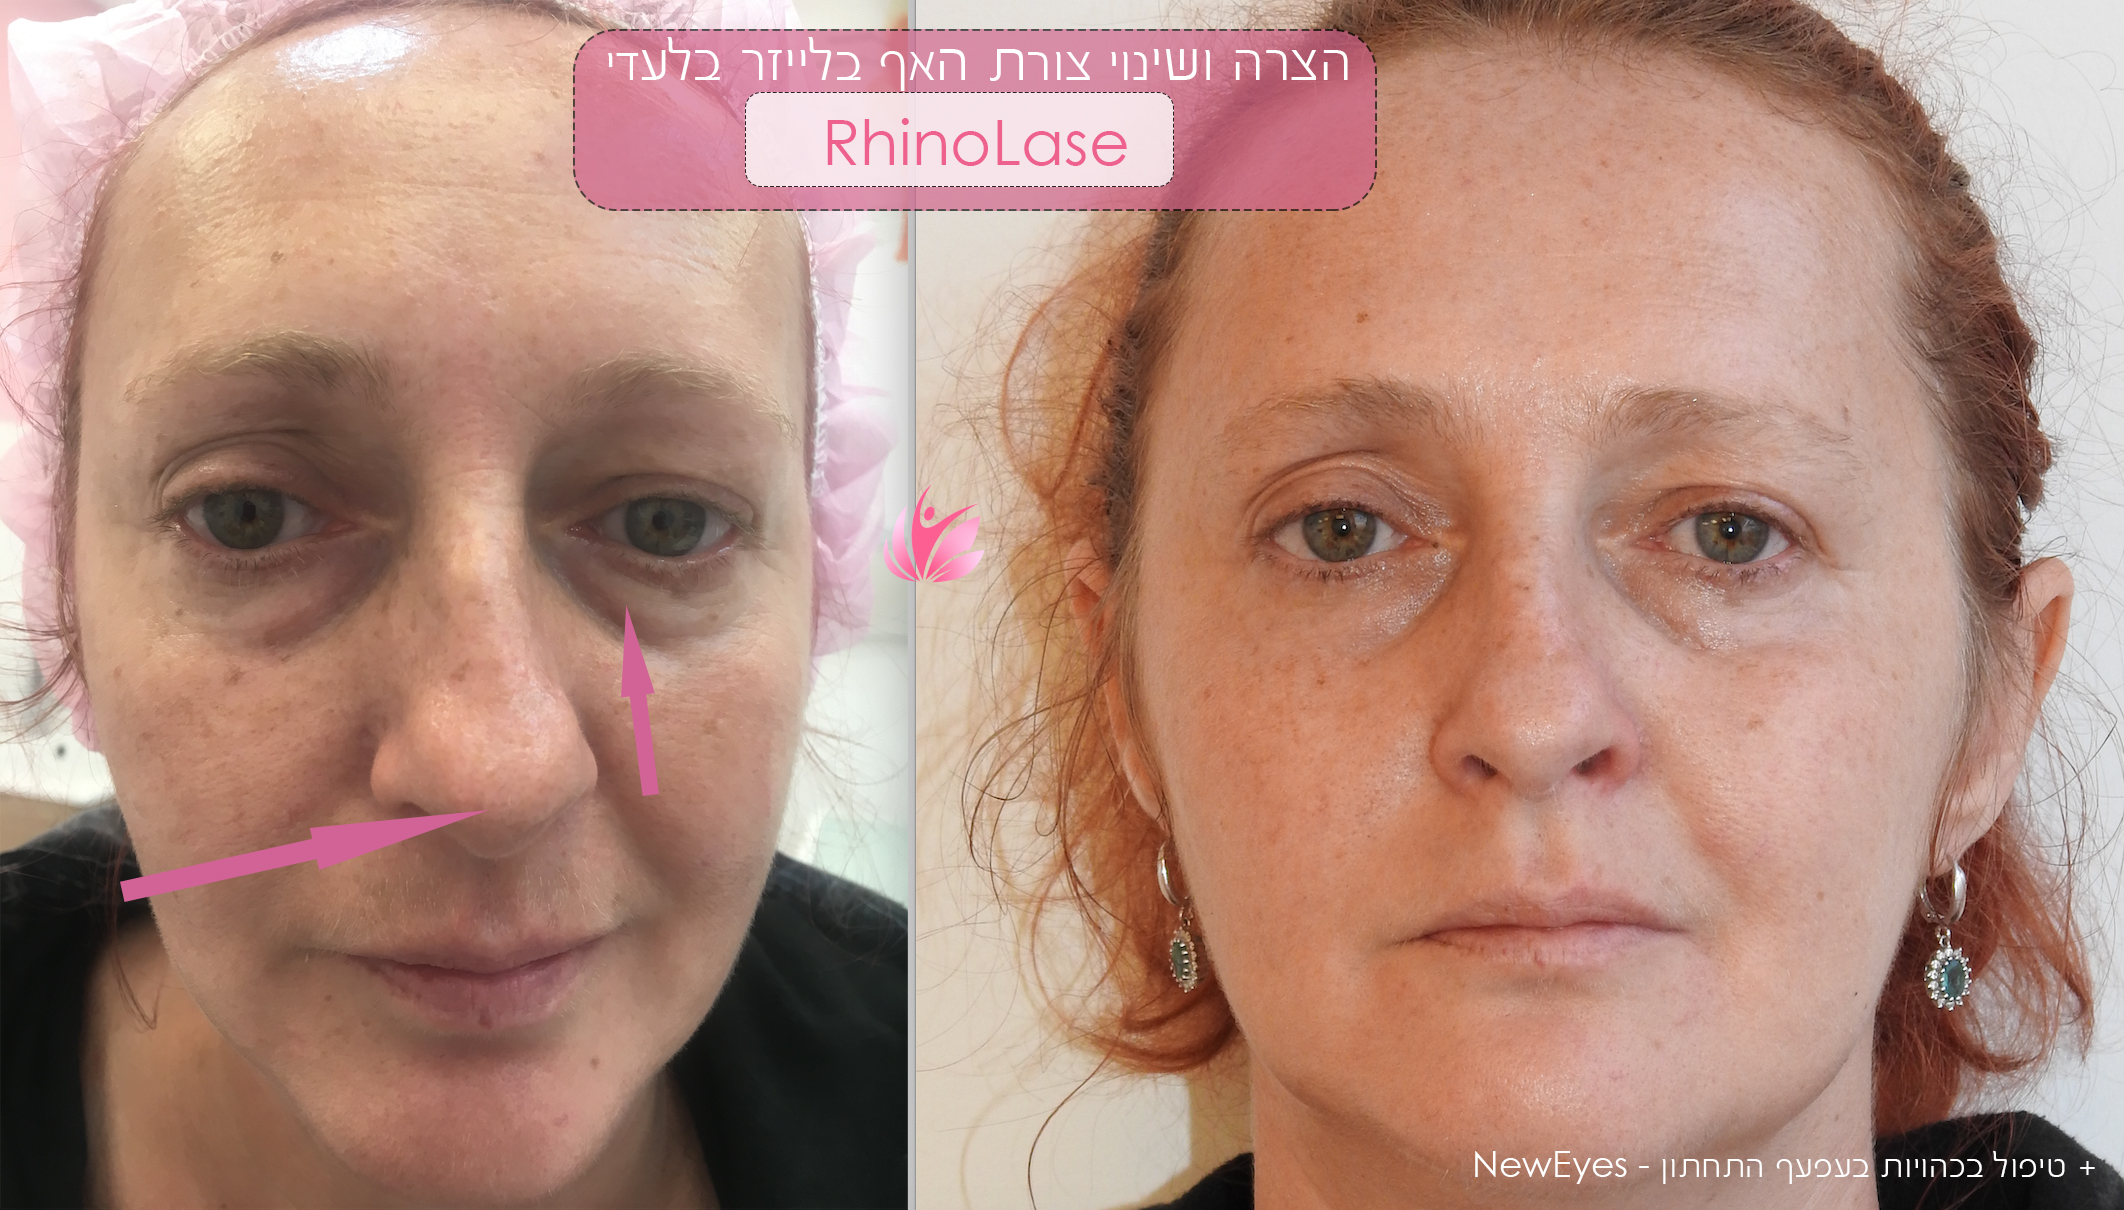 Nose change without surgery